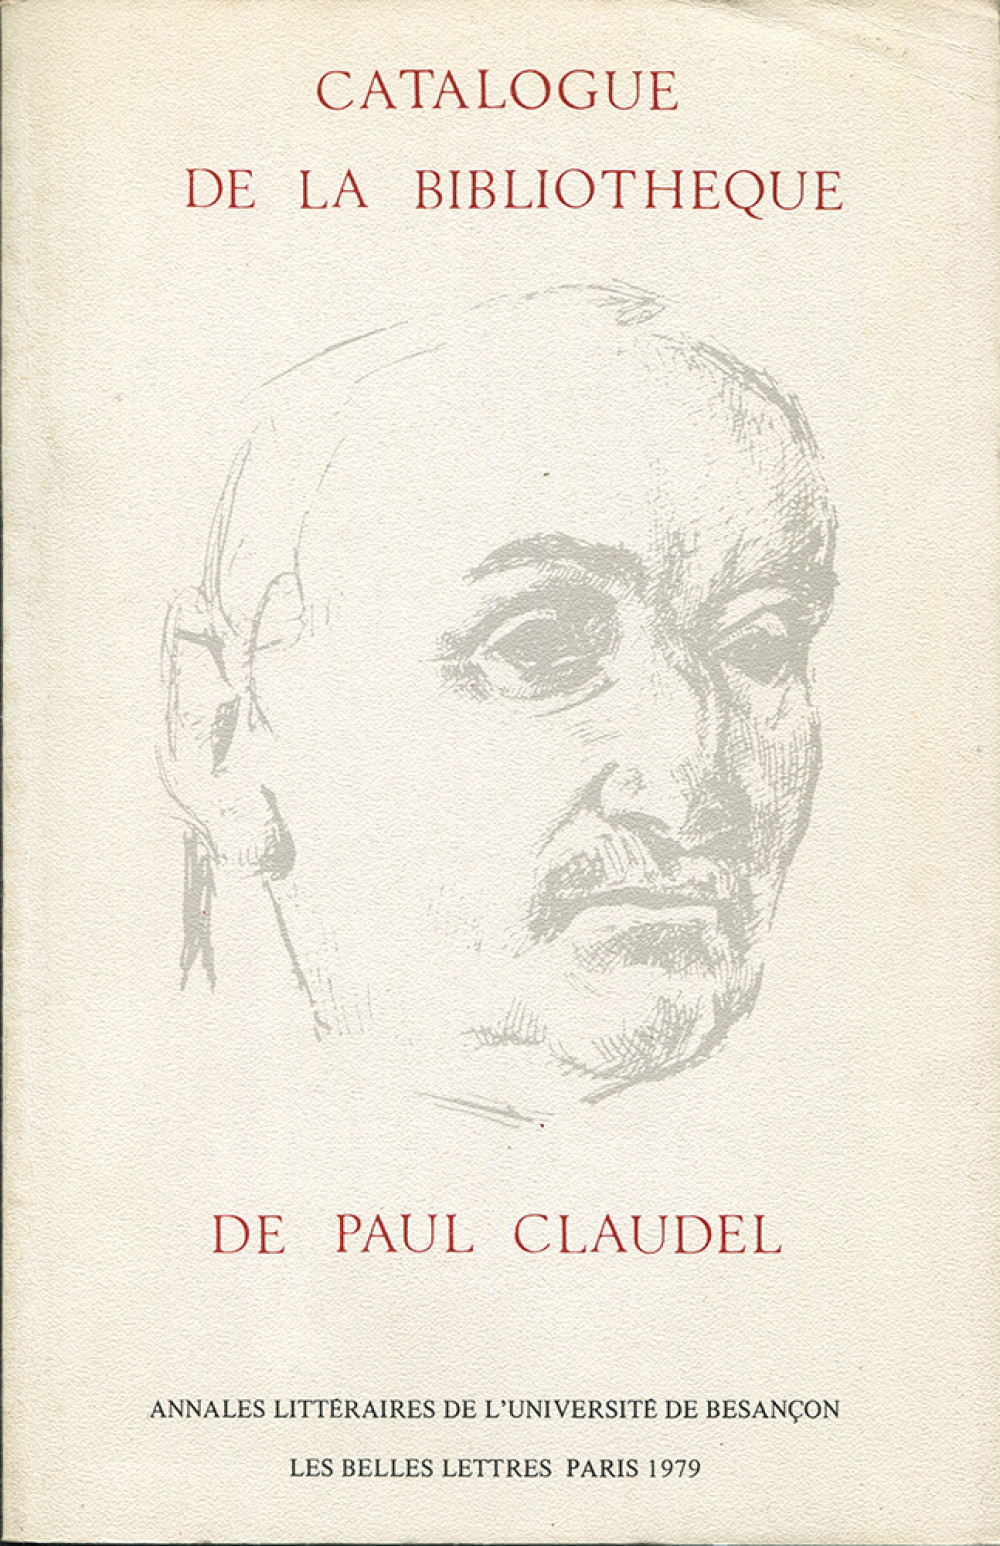 Catalogue de la bibliothèque de Paul Claudel